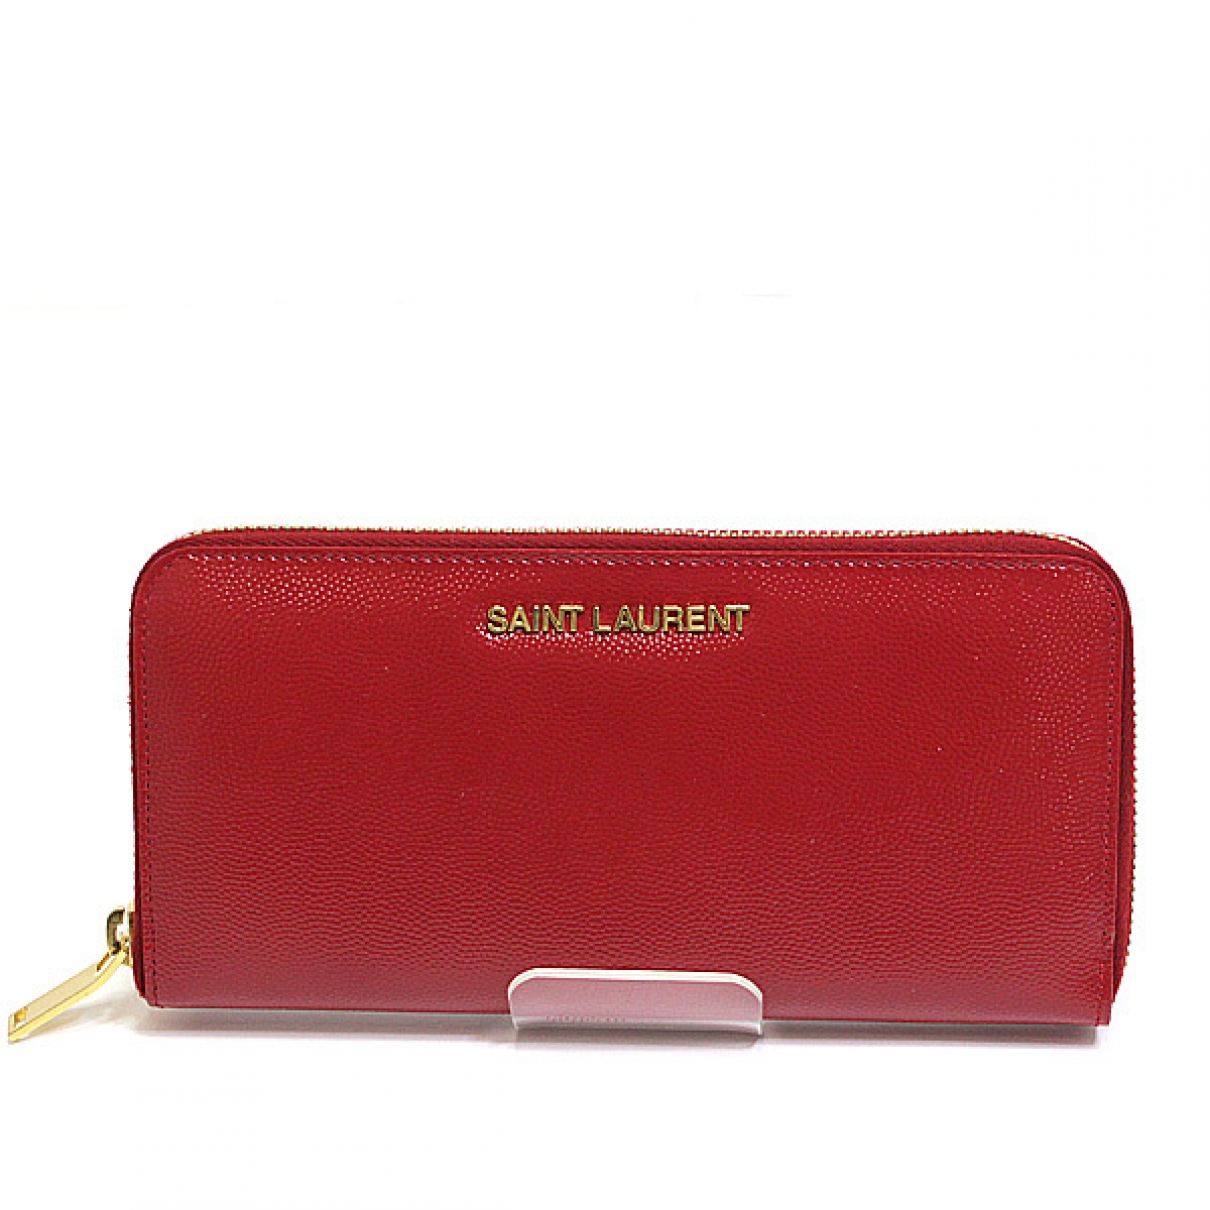 Saint Laurent \N Red Patent leather wallet for Women \N